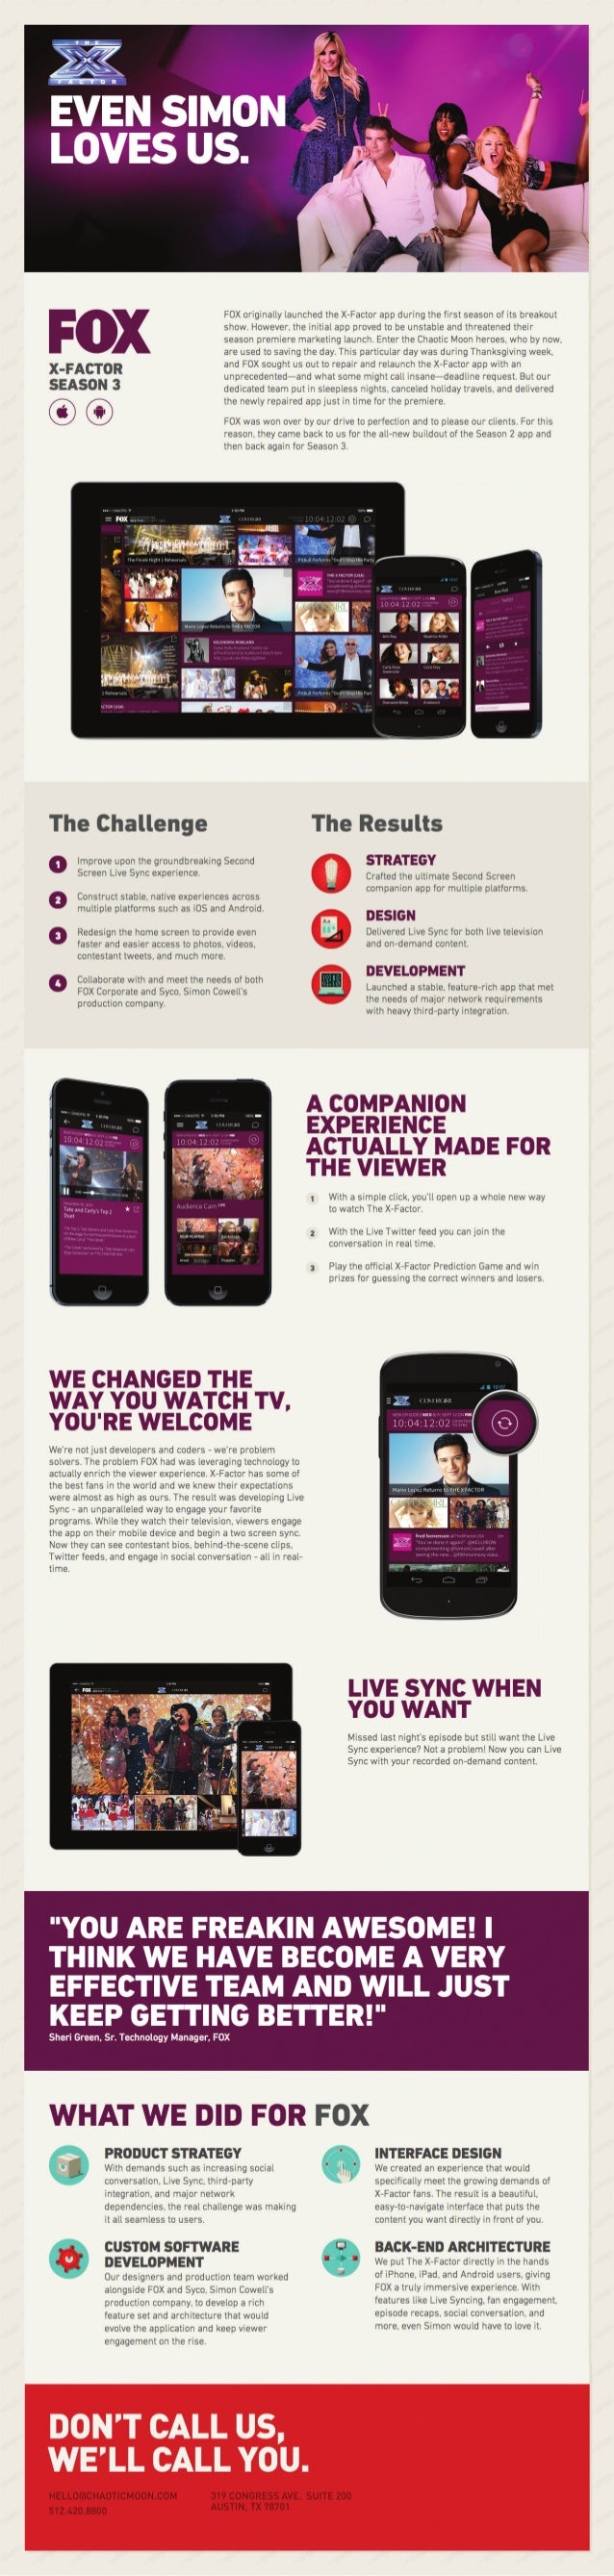 The X-Factor App: One Of TV's Biggest Hits